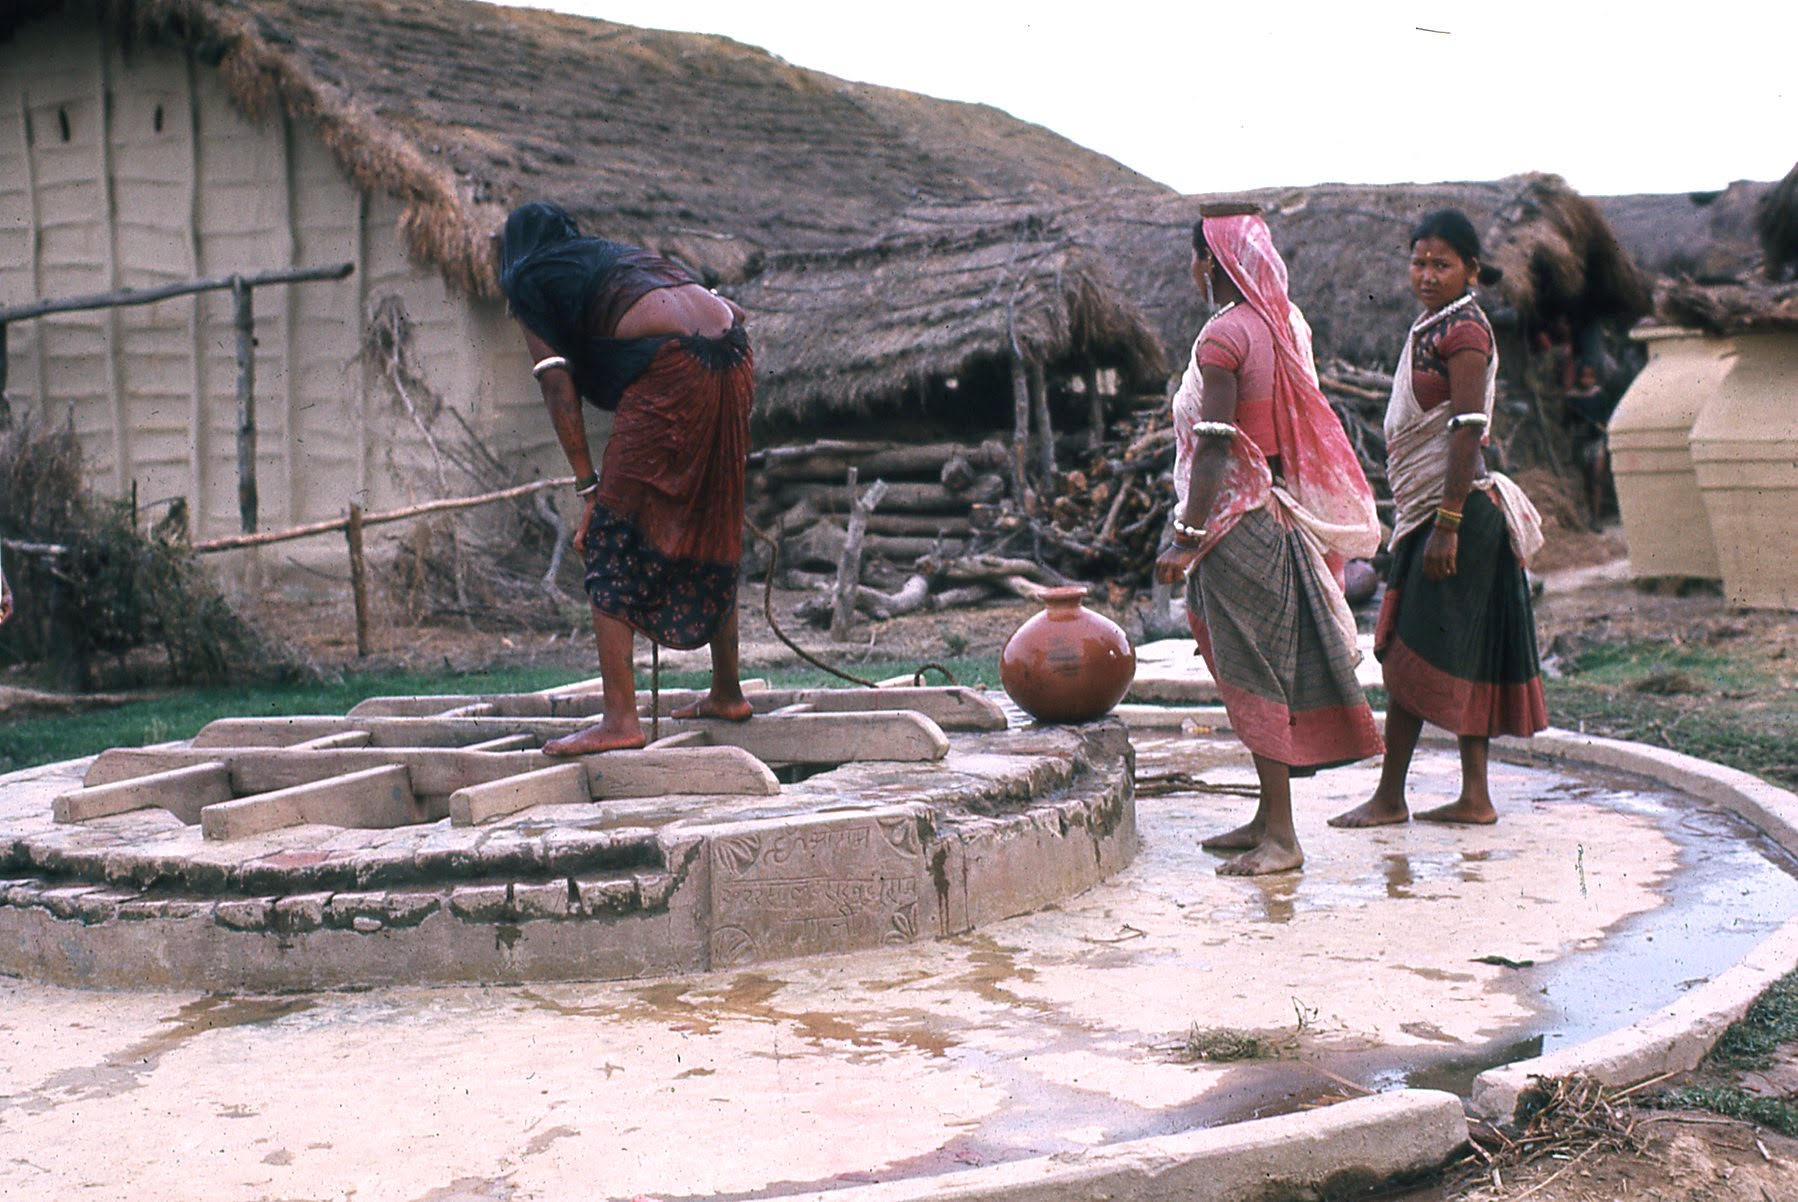 Three women collect water in pots from village well. One woman looks down the well and another faces the camera.